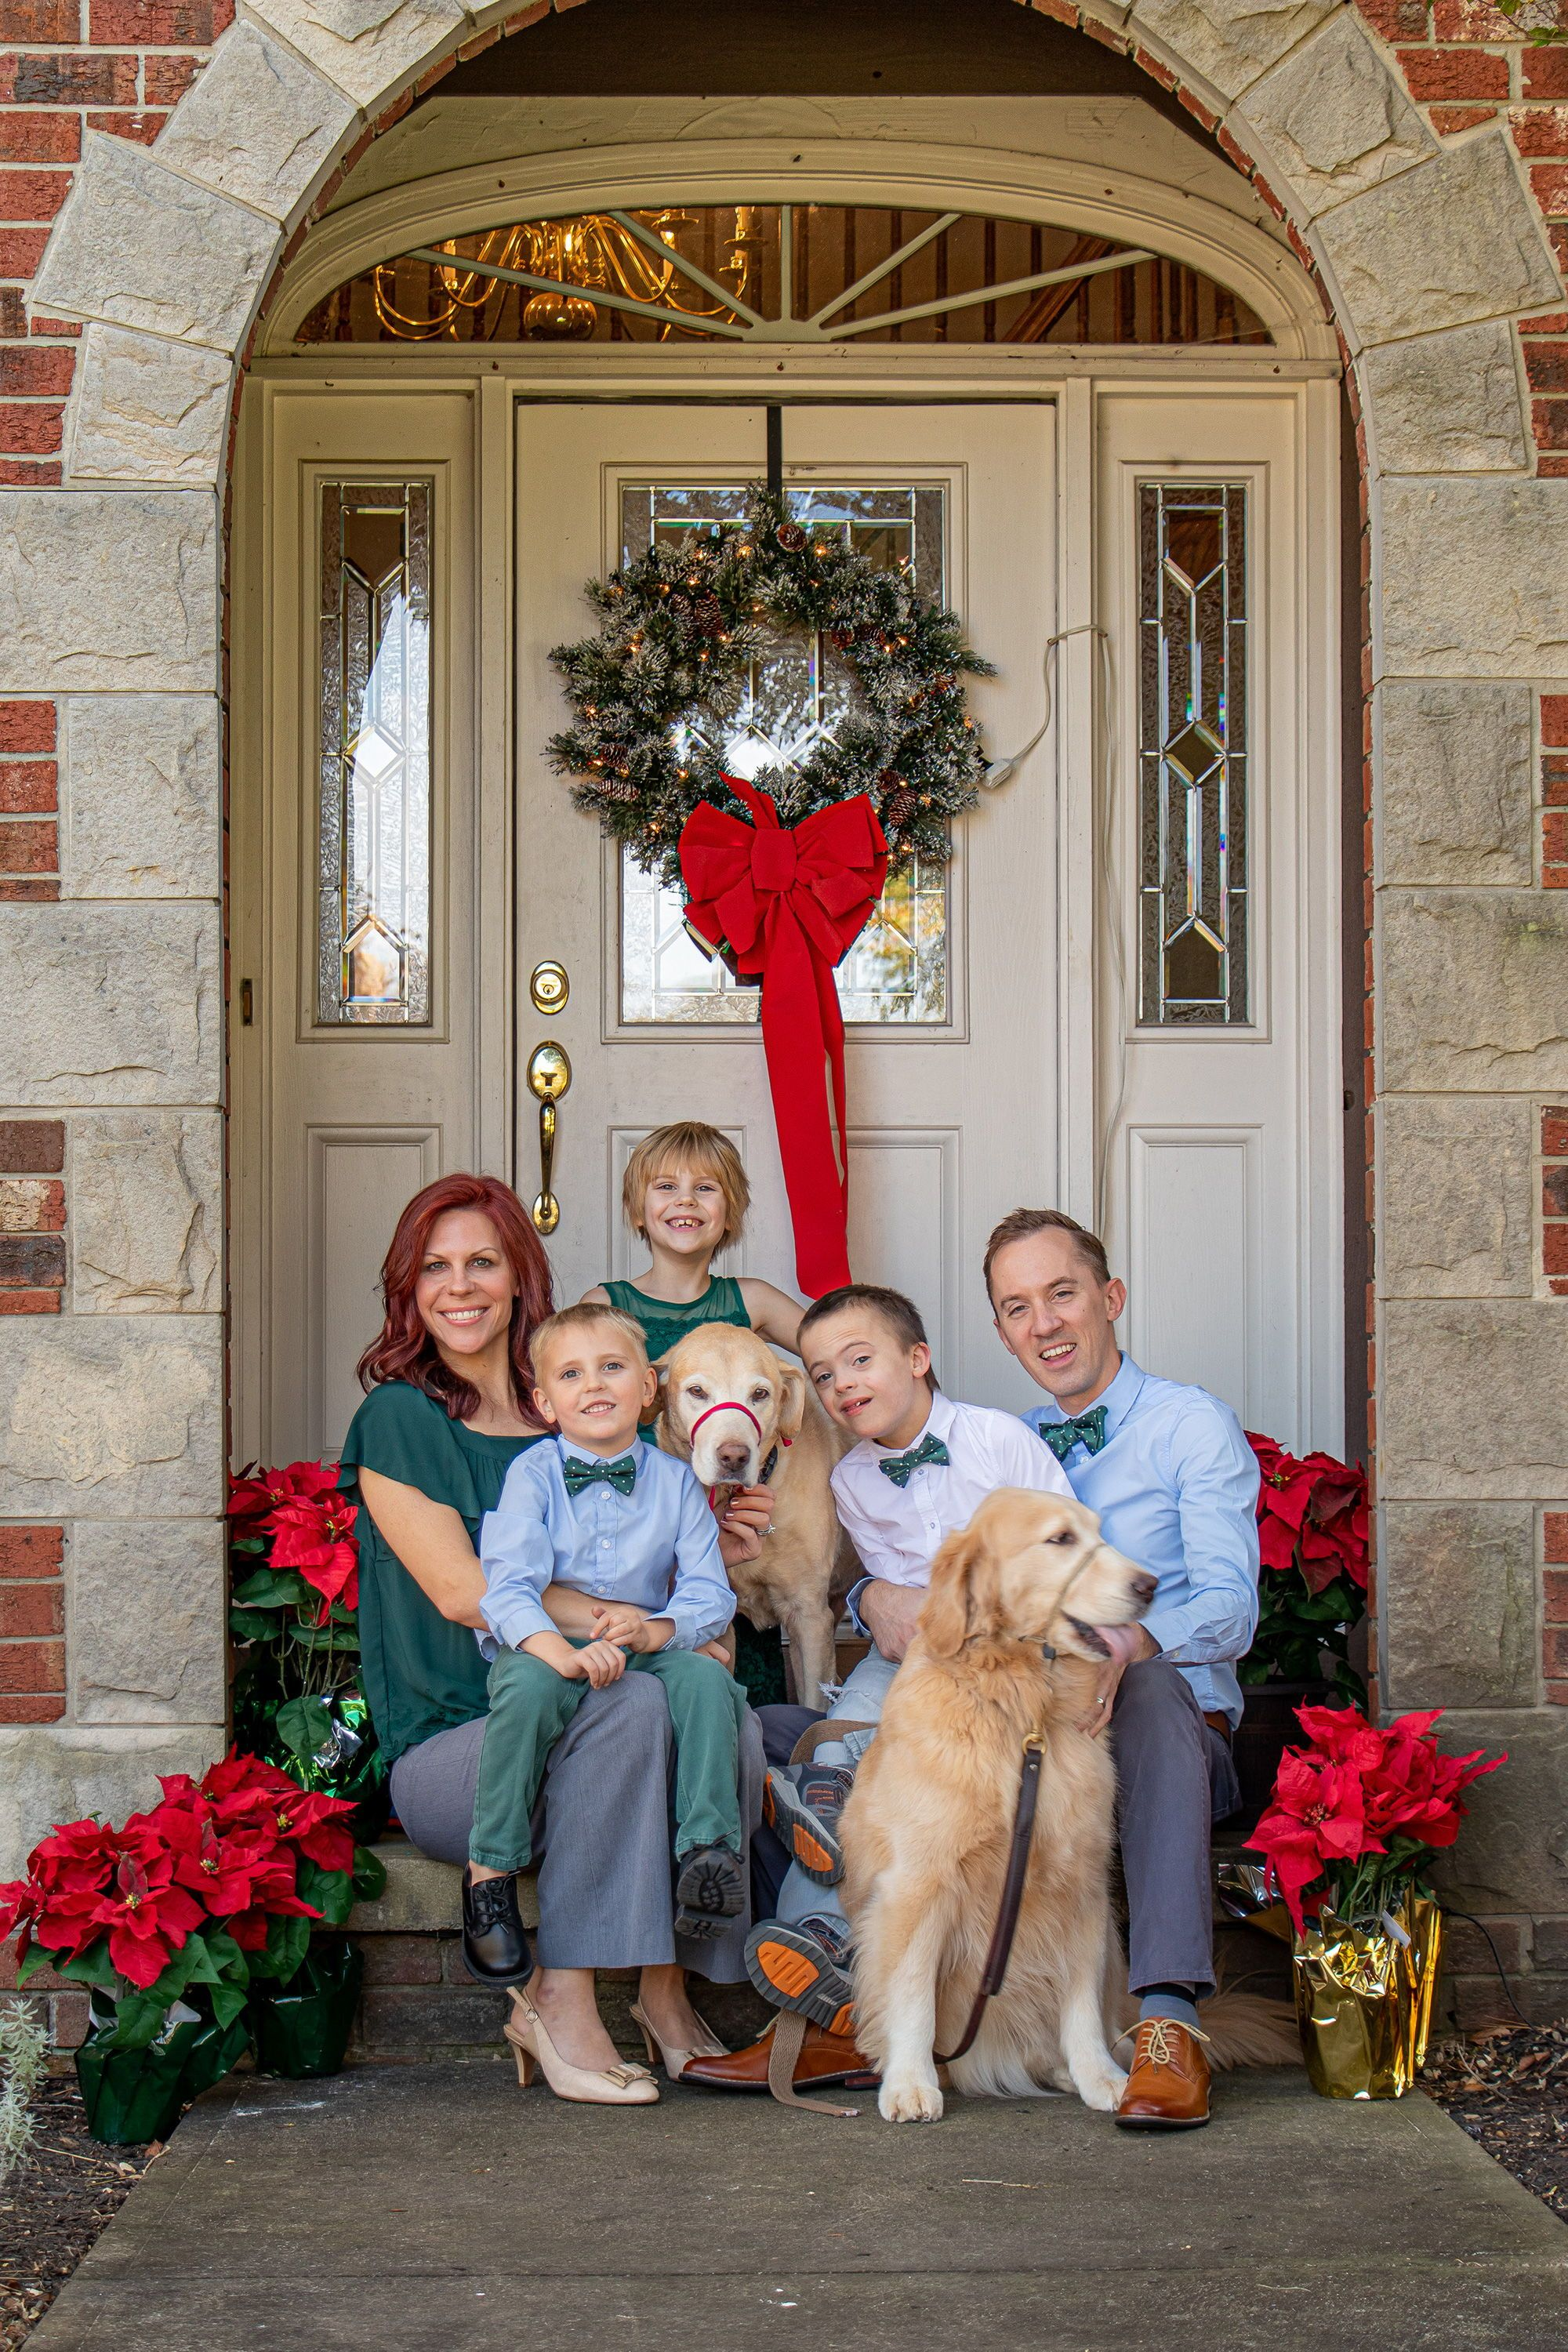 Christmas Card Photo Style Guide - Five Ties for Your Family Photo Christmas Picture Trends: Style ideas for family photos and Christmas cards. If you're looking for some adorable family photos for your custom Christmas card photos this year, you will need some creative and festive style ideas to get you going. This family found the perfect holiday outfit with forest green and white polka dot bow ties including matching father/son tie sizes.